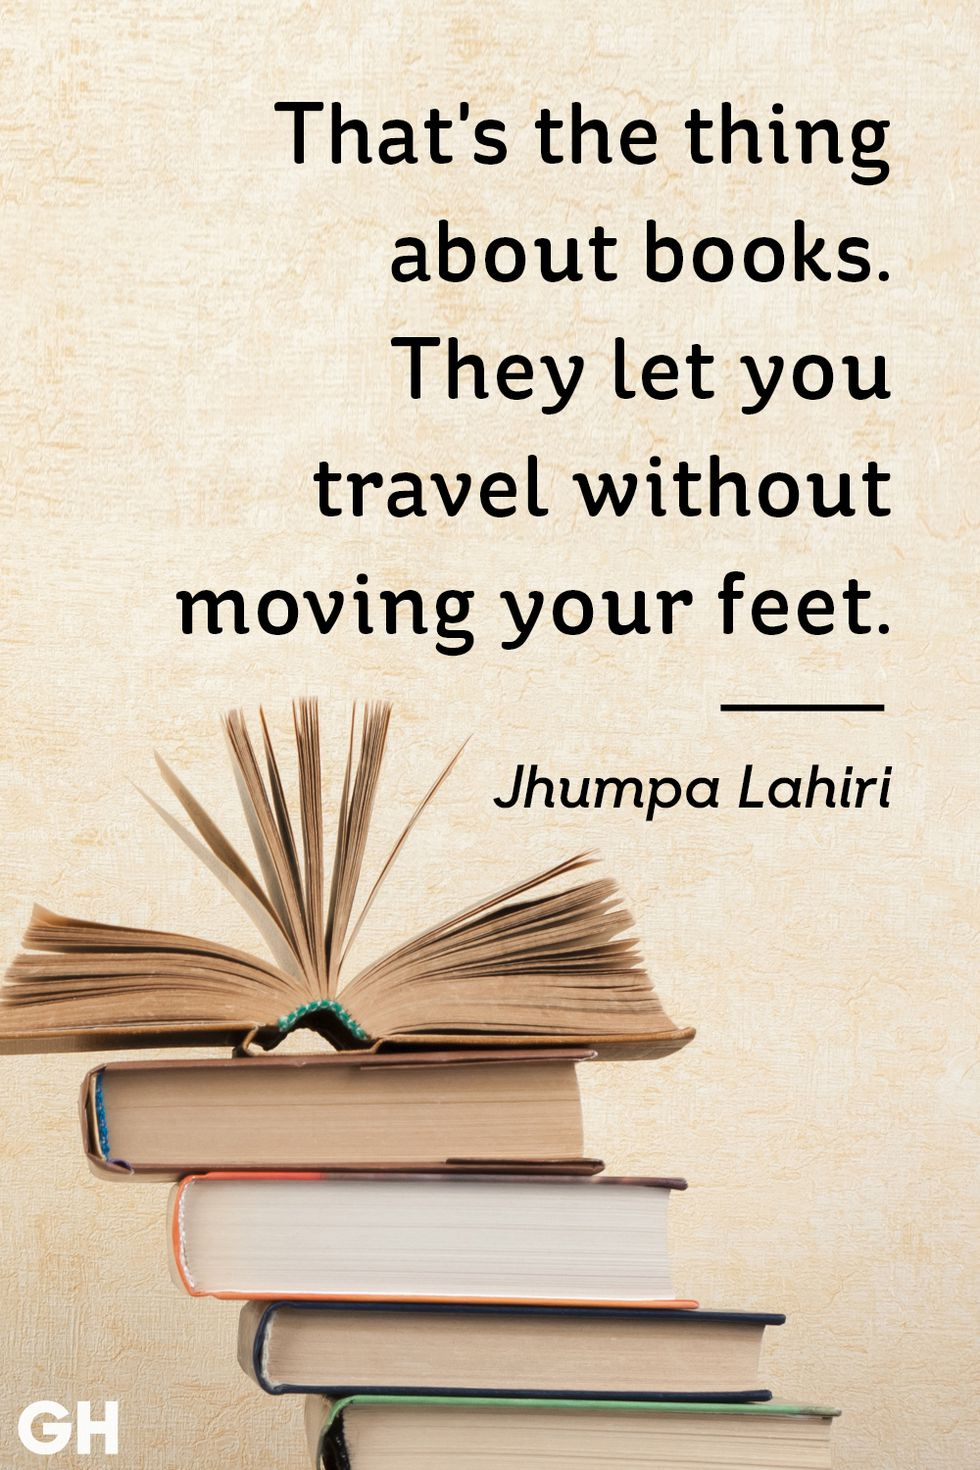 26 Quotes for the Ultimate Book Lover | Best quotes from books ...